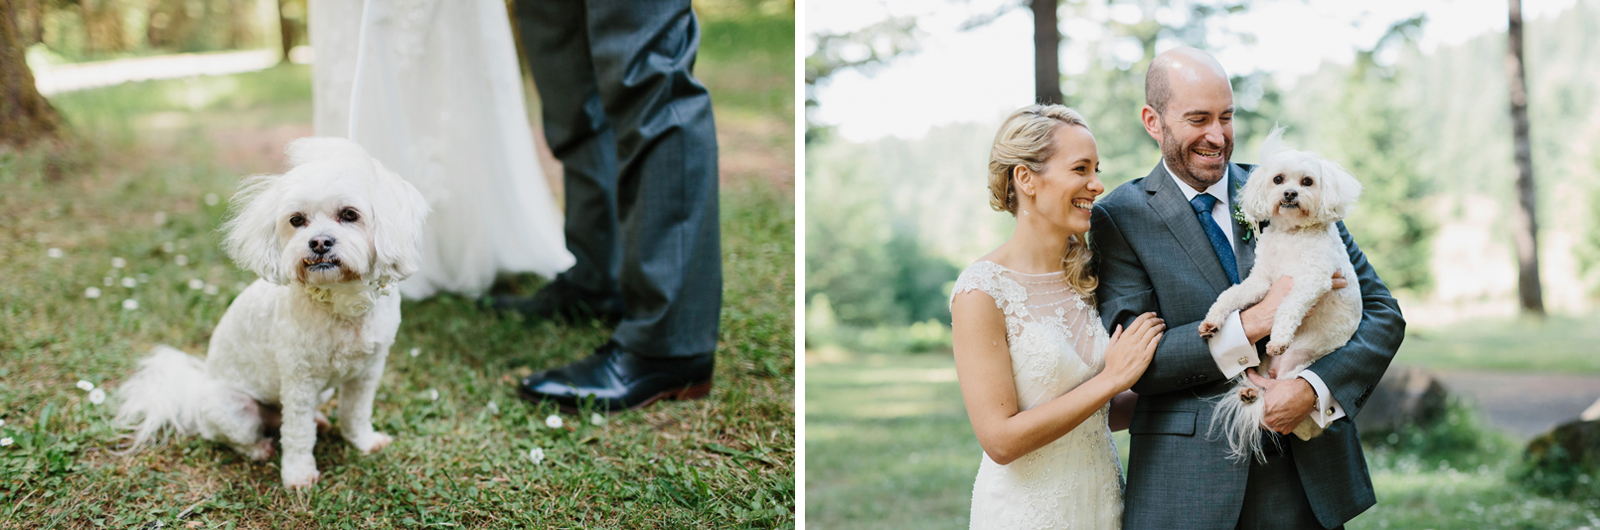 Silver Falls State Park Wedding by Anna Jaye Photography 021